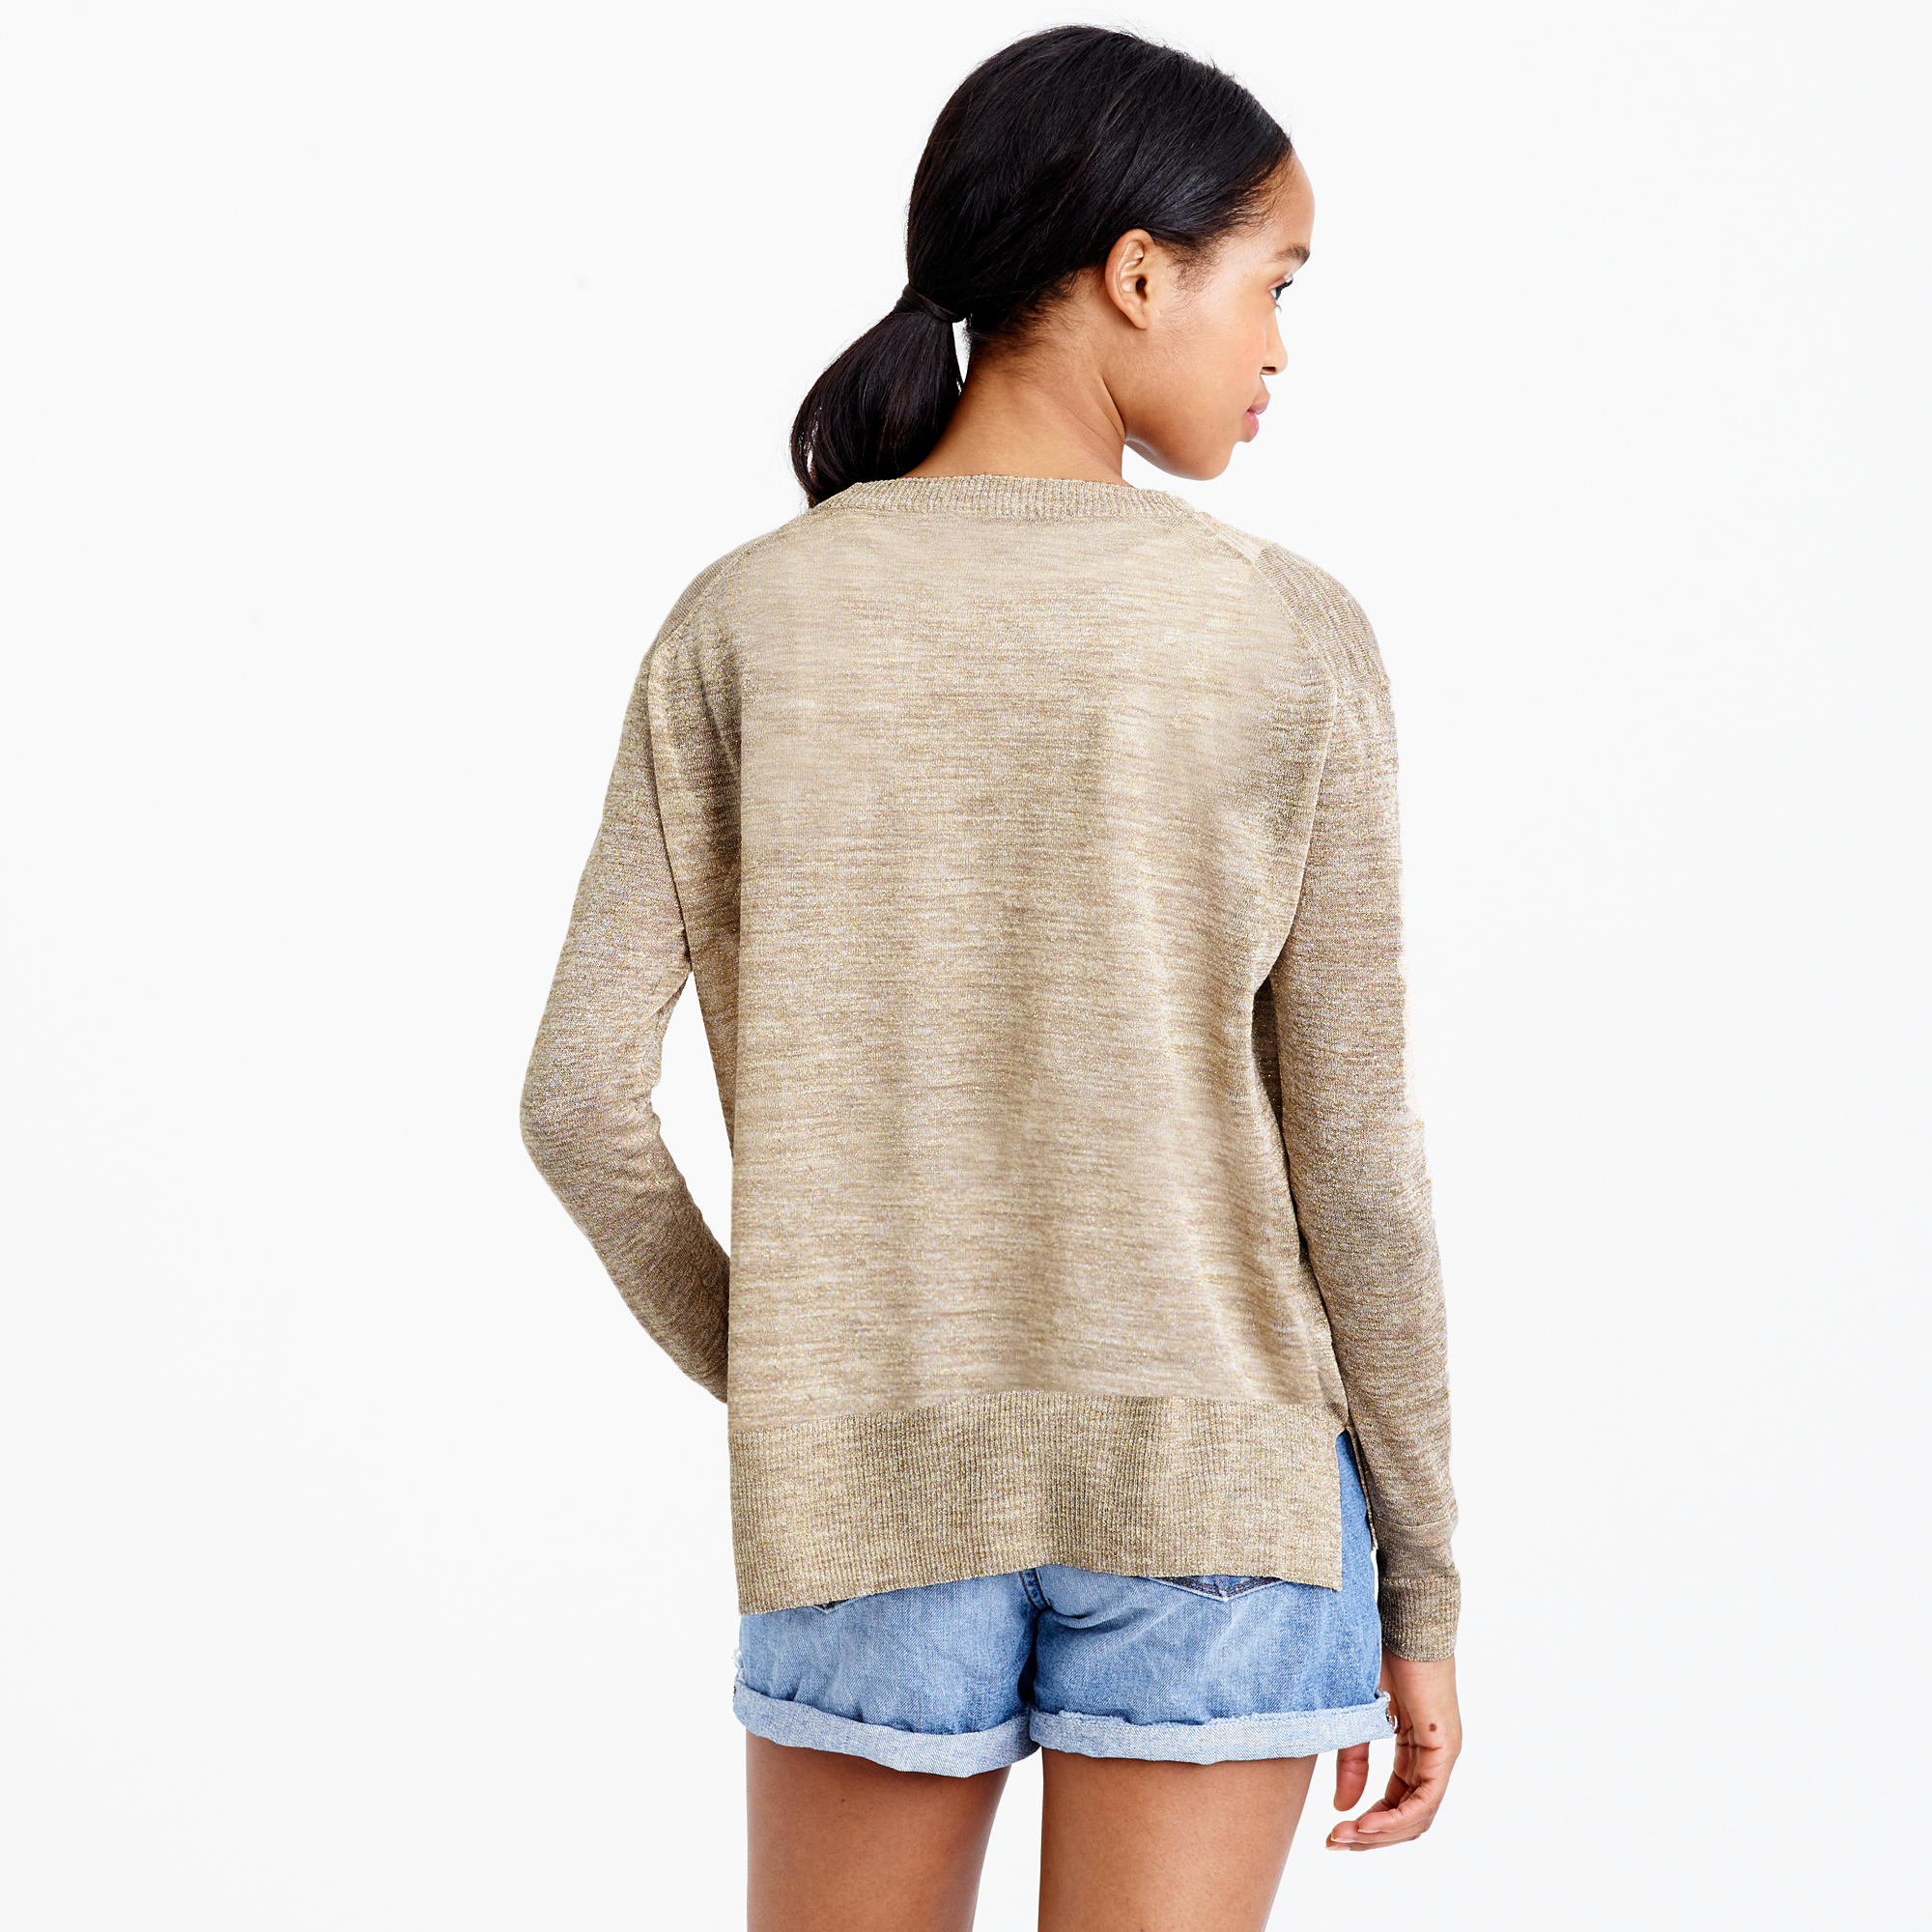 J.crew Space-dyed V-neck Cardigan Sweater in Metallic | Lyst